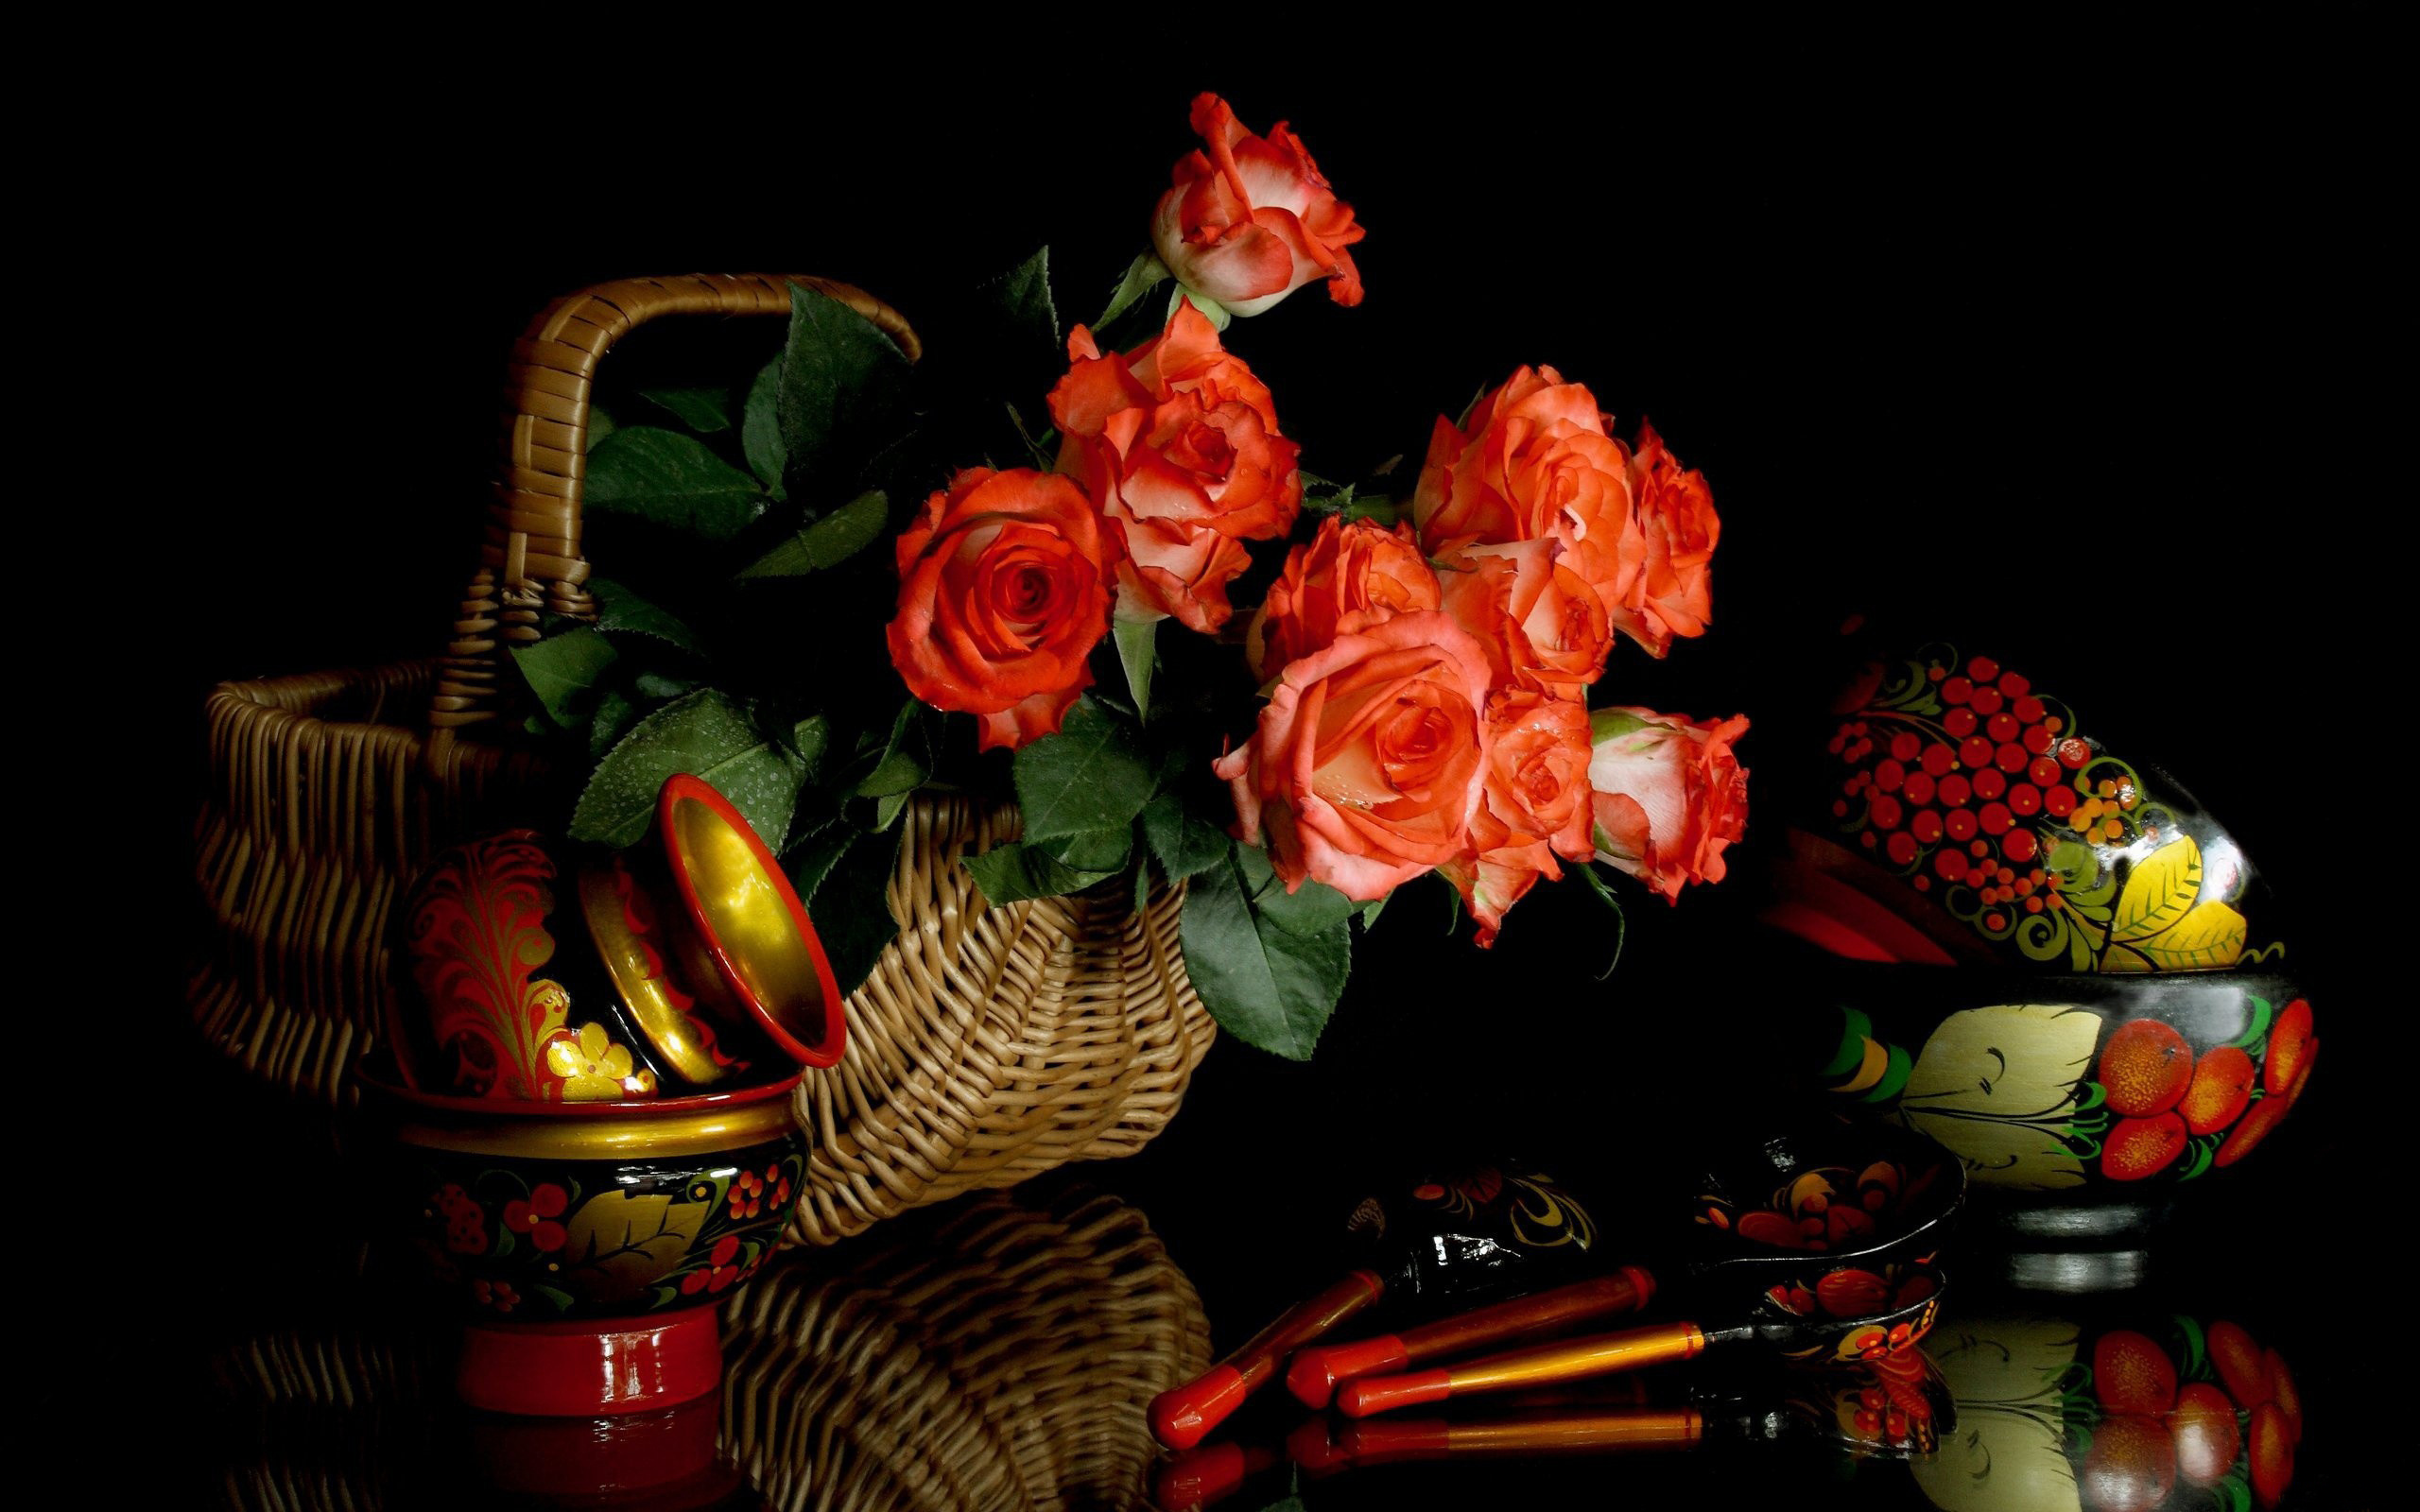 979 Still Life Hd Wallpapers Background Images Wallpaper Abyss